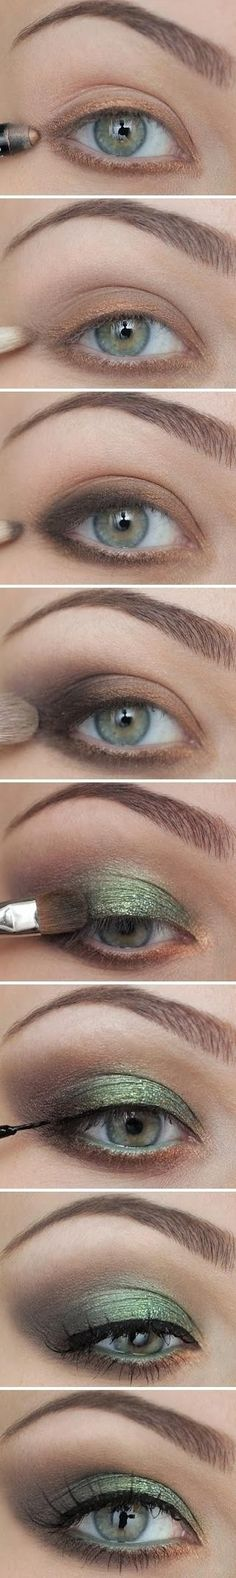 Creating beautiful eyes with brown and green